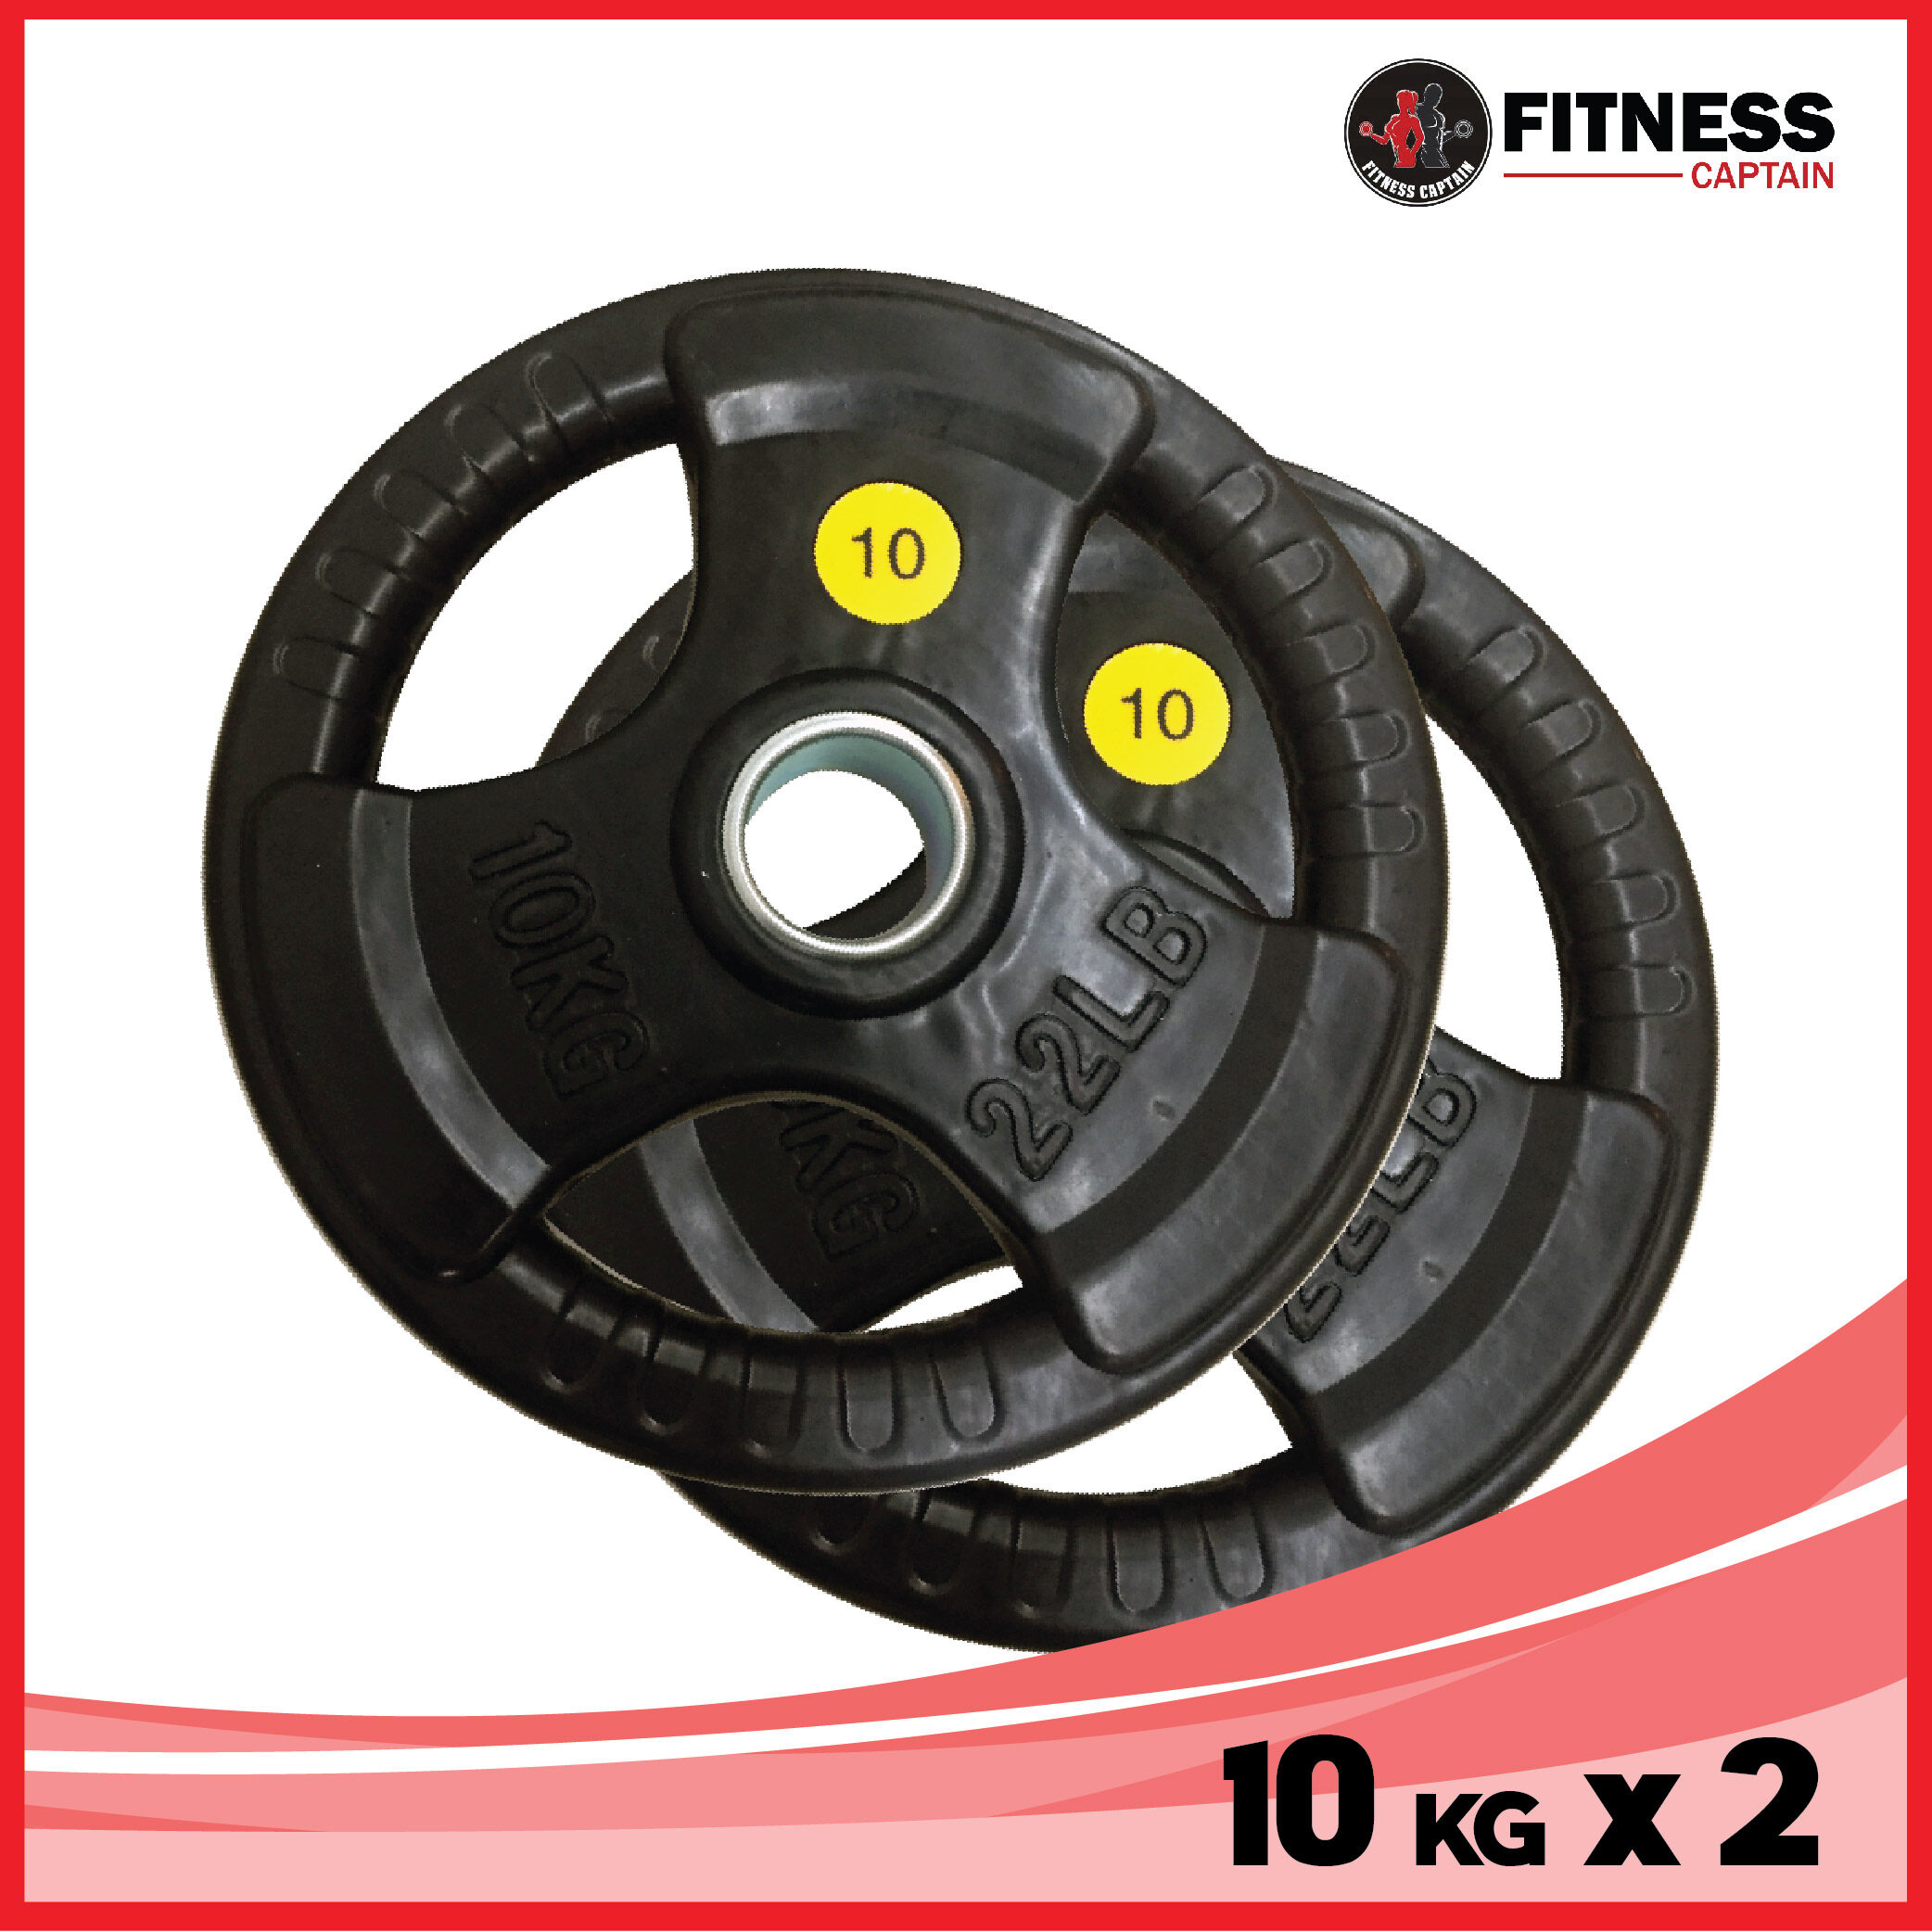 Fitness Captain 10kg Set of 2 ( 2 x 10kg ) Gym Olympic Rubber Weight Plate